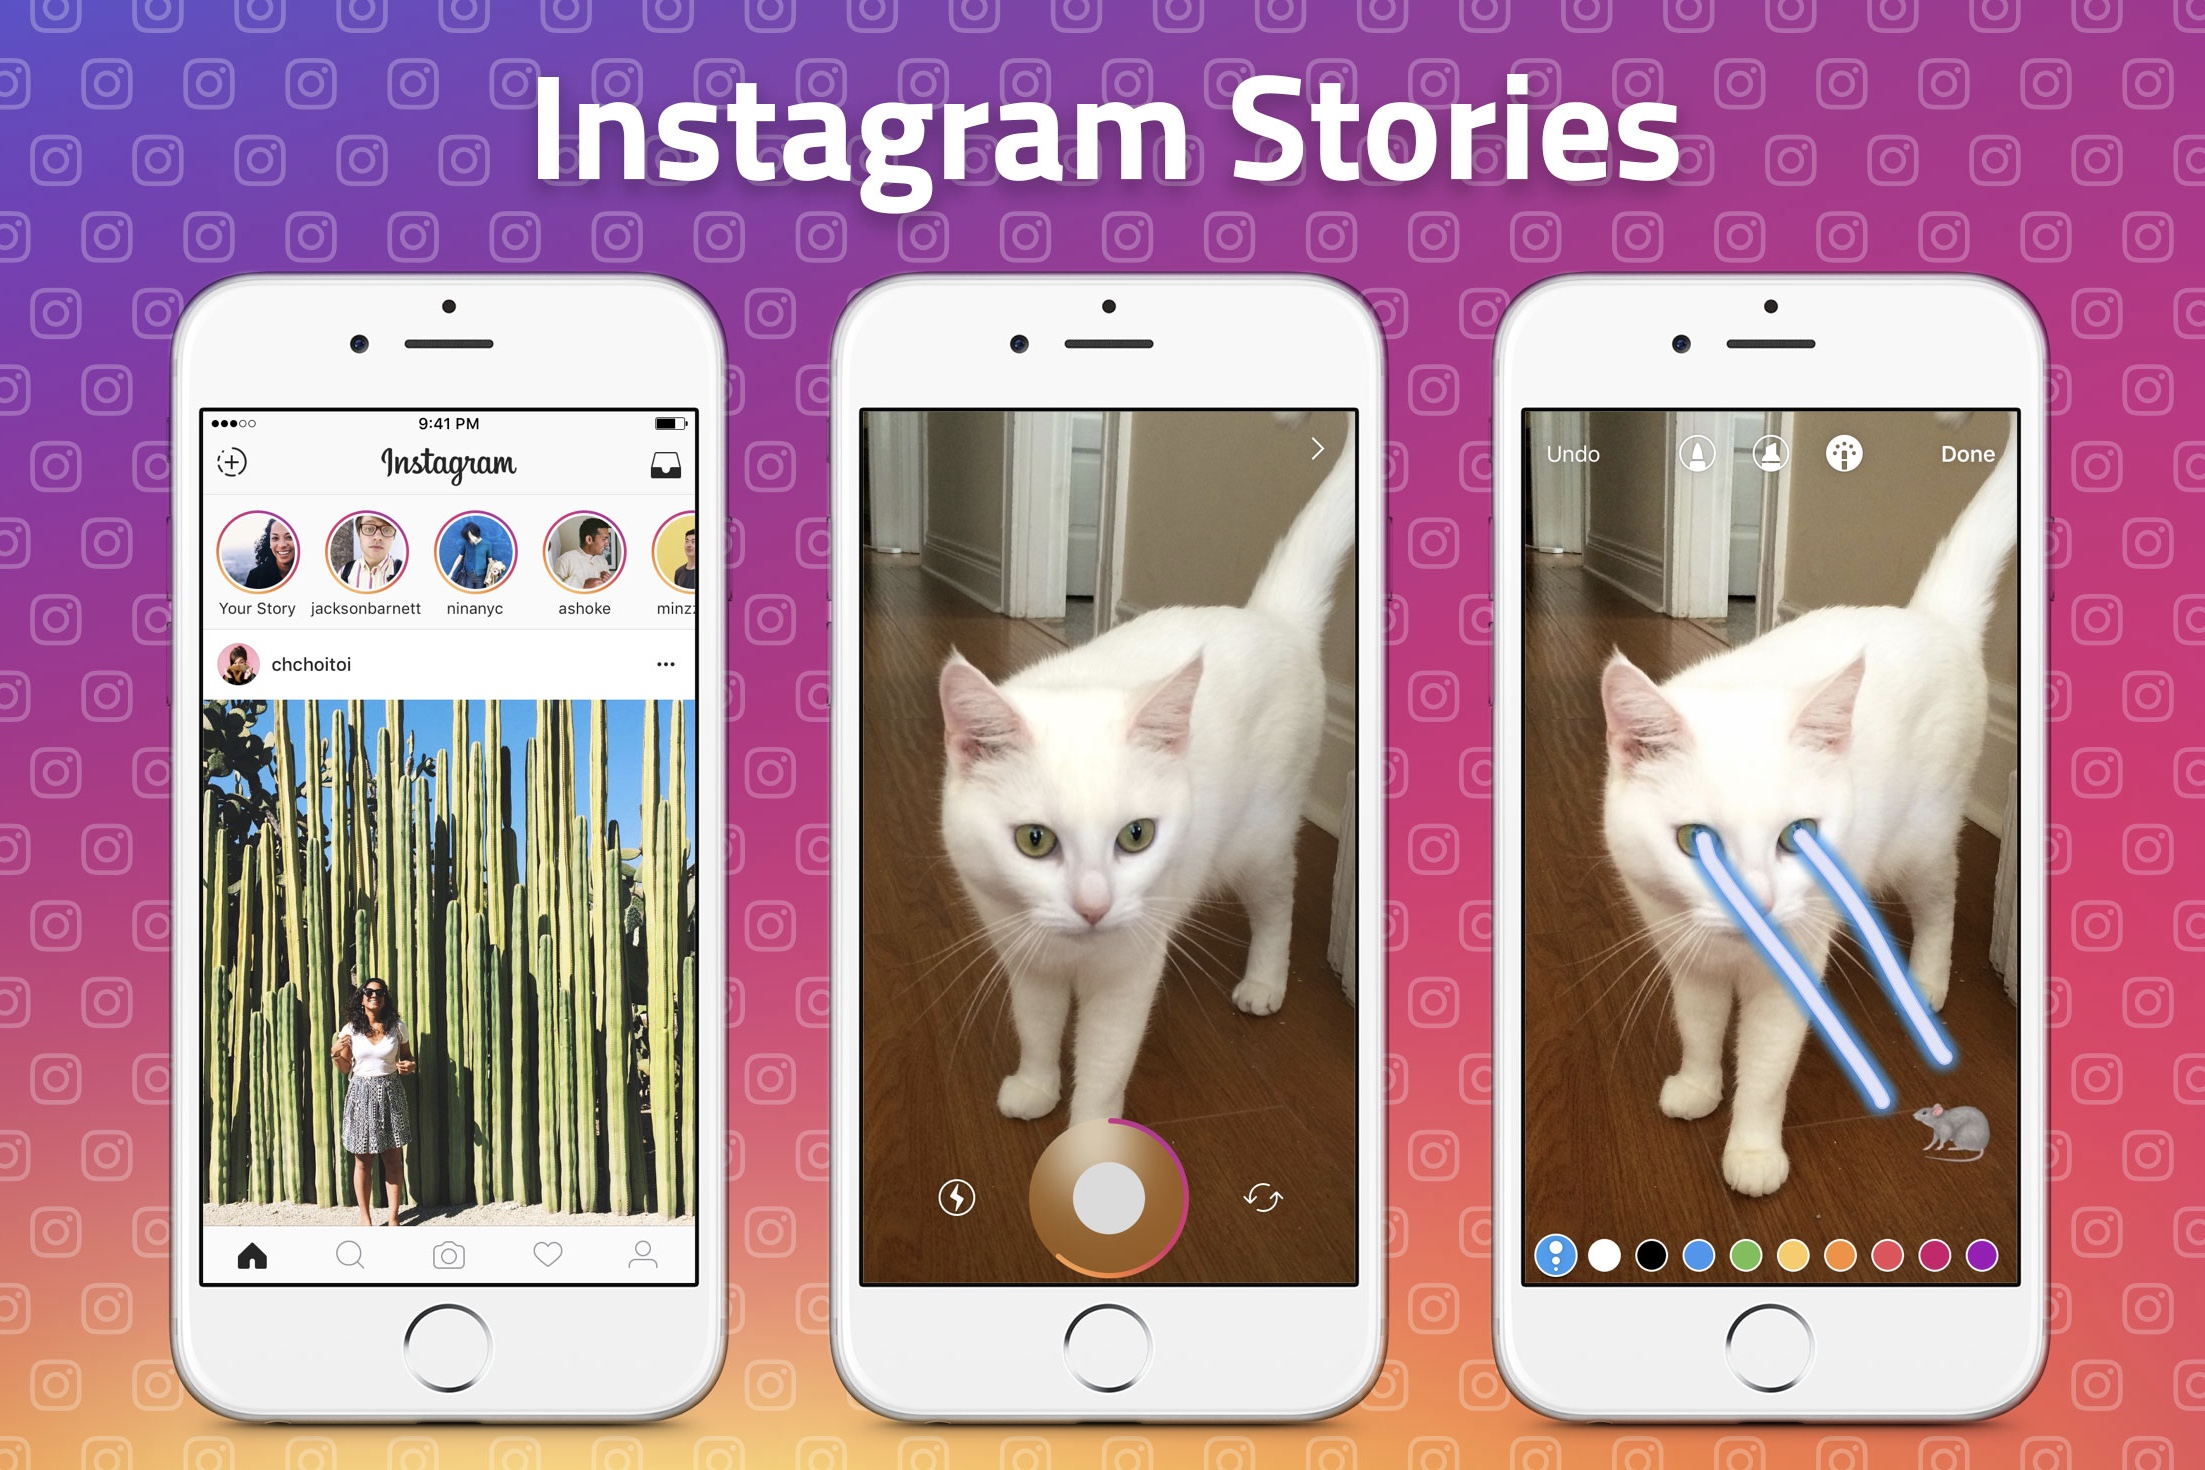 year,daily users,story,stories feature,Facebook,Snapchat,milestone,200 million,launch,feature,stories,users,Instagram ,news,apps,appnations.com,appnations,